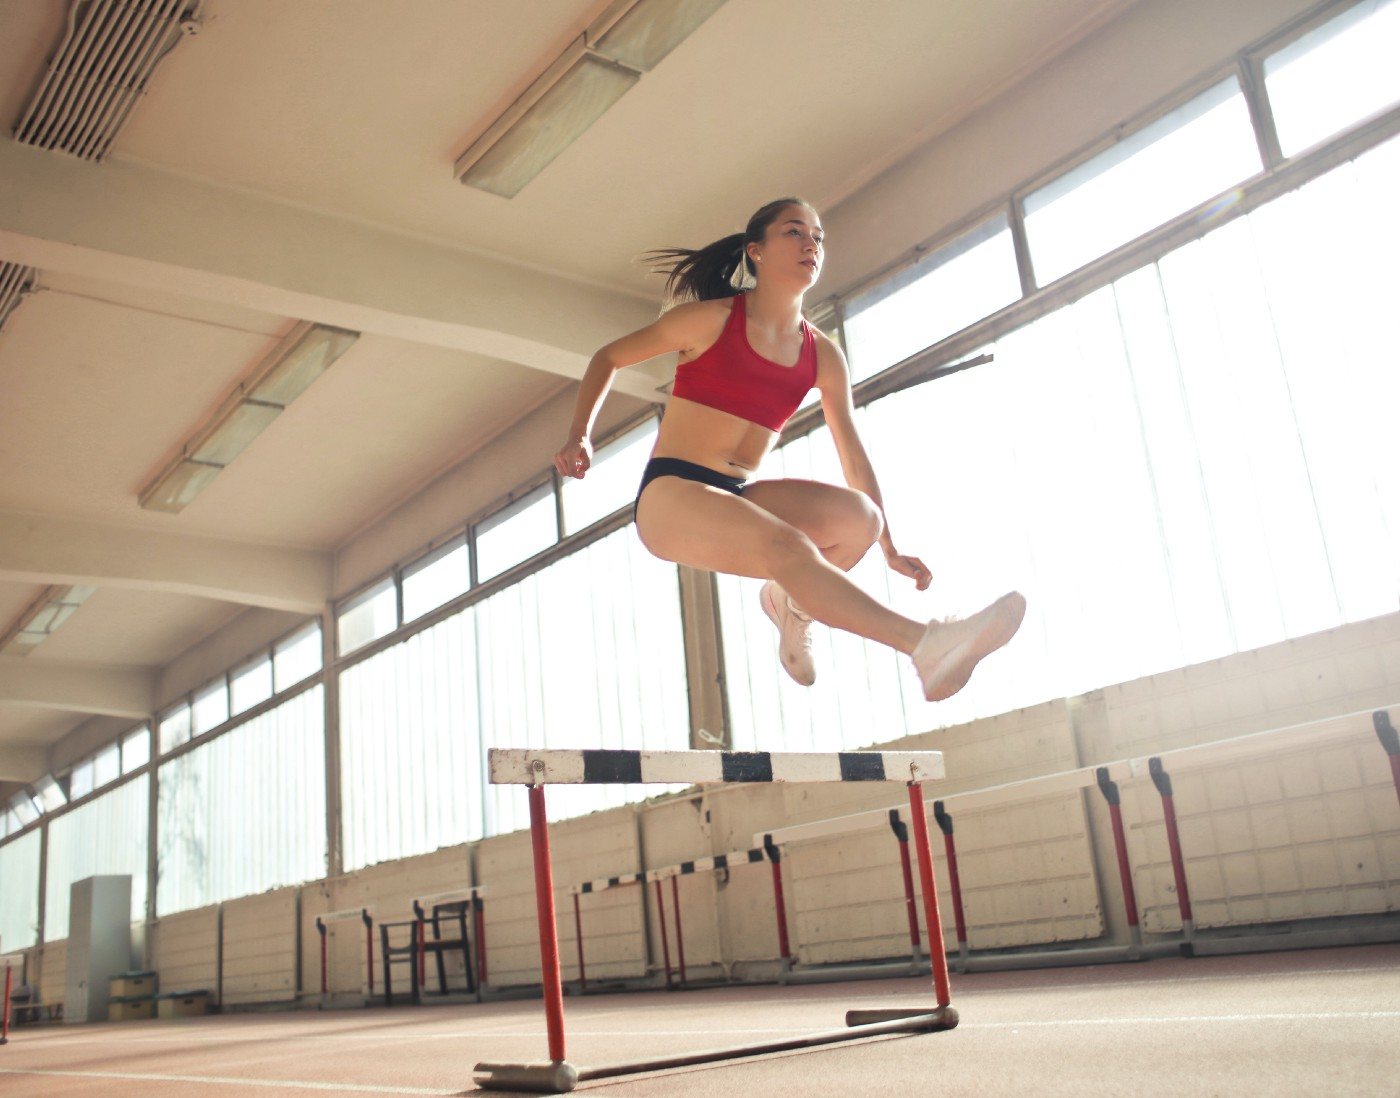 Female athlete jumping over a hurdle in what appears to be a practice jump in an indoor gym.